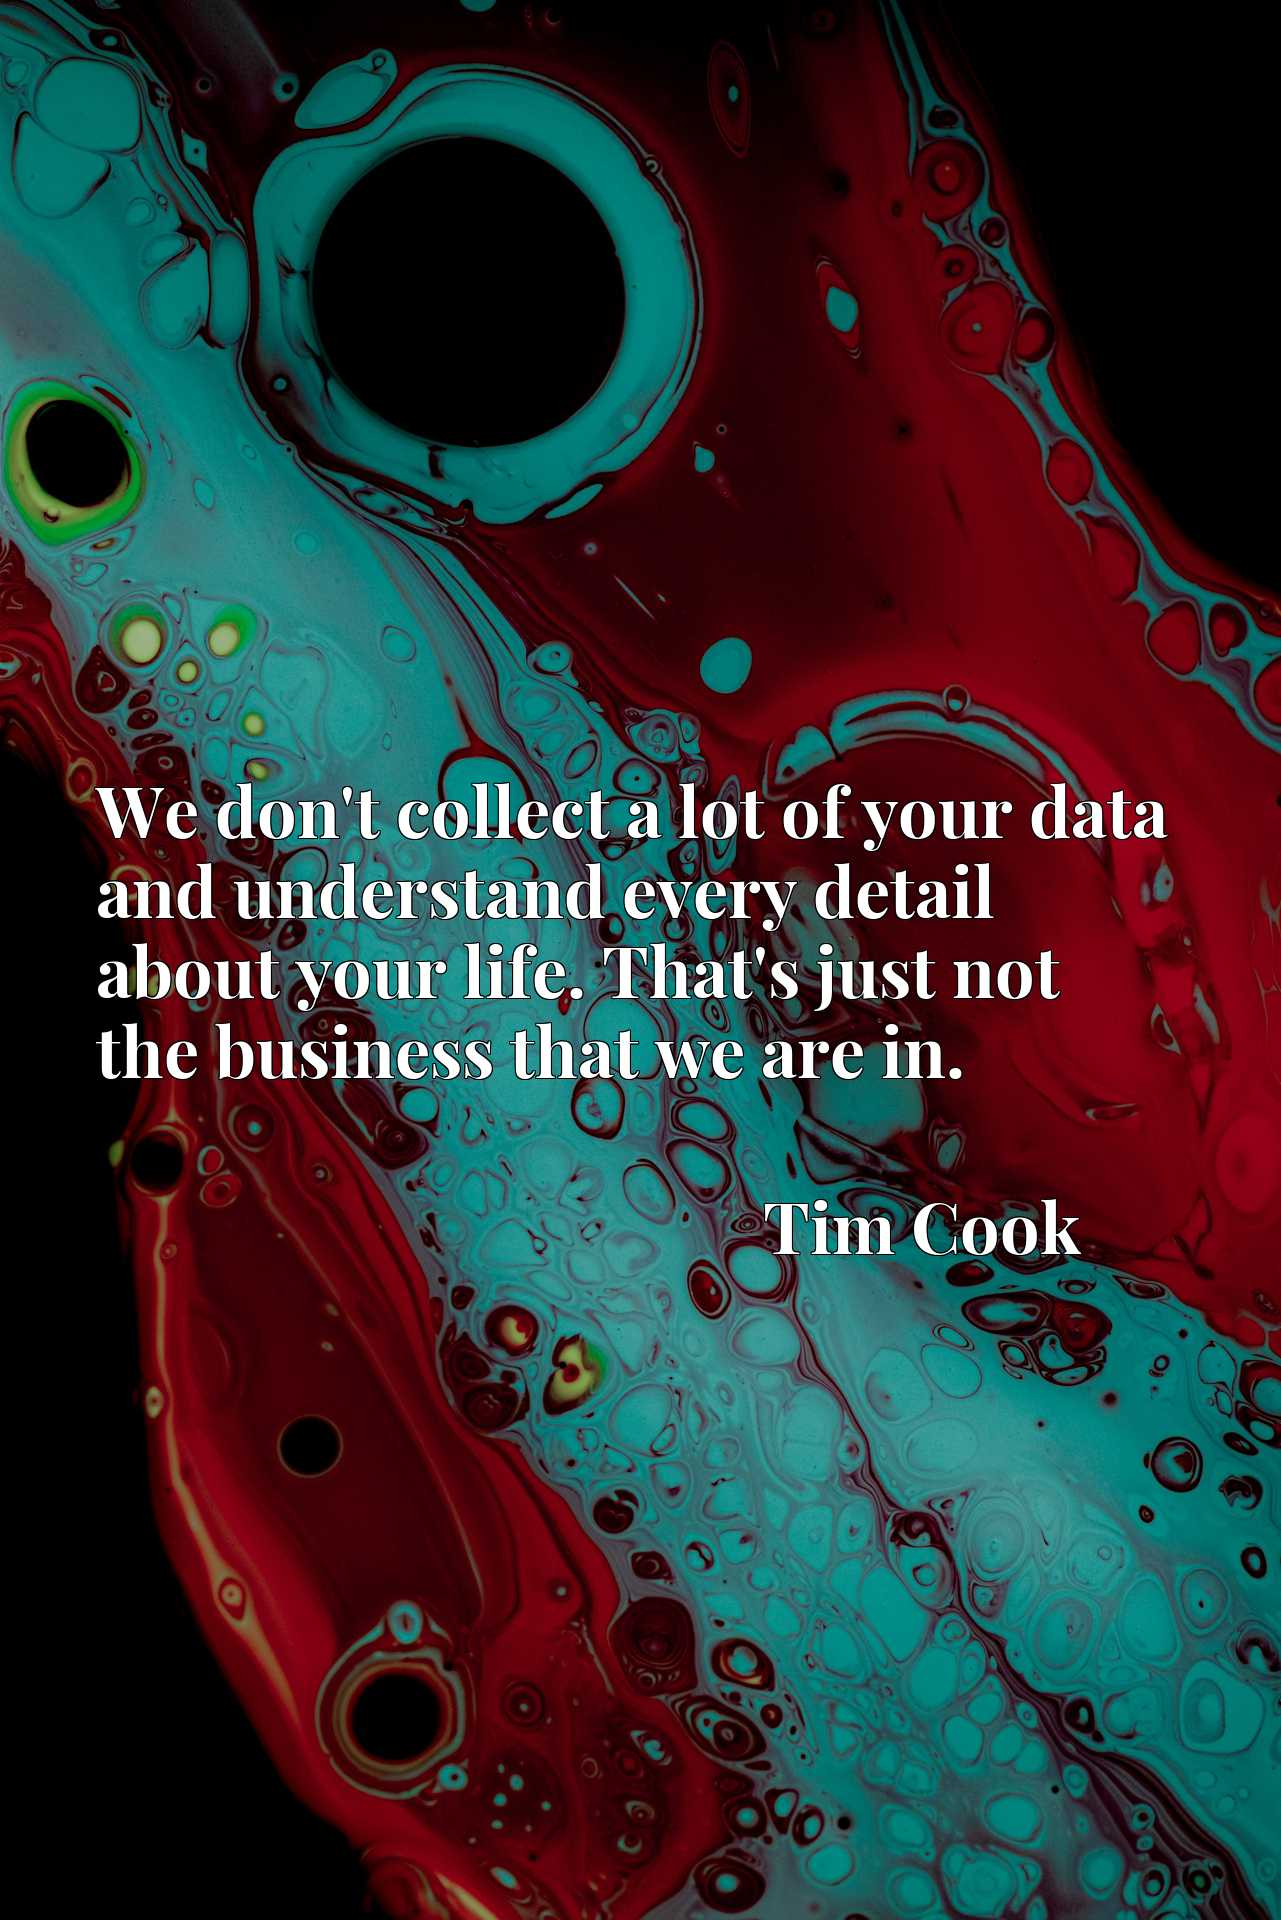 We don't collect a lot of your data and understand every detail about your life. That's just not the business that we are in.